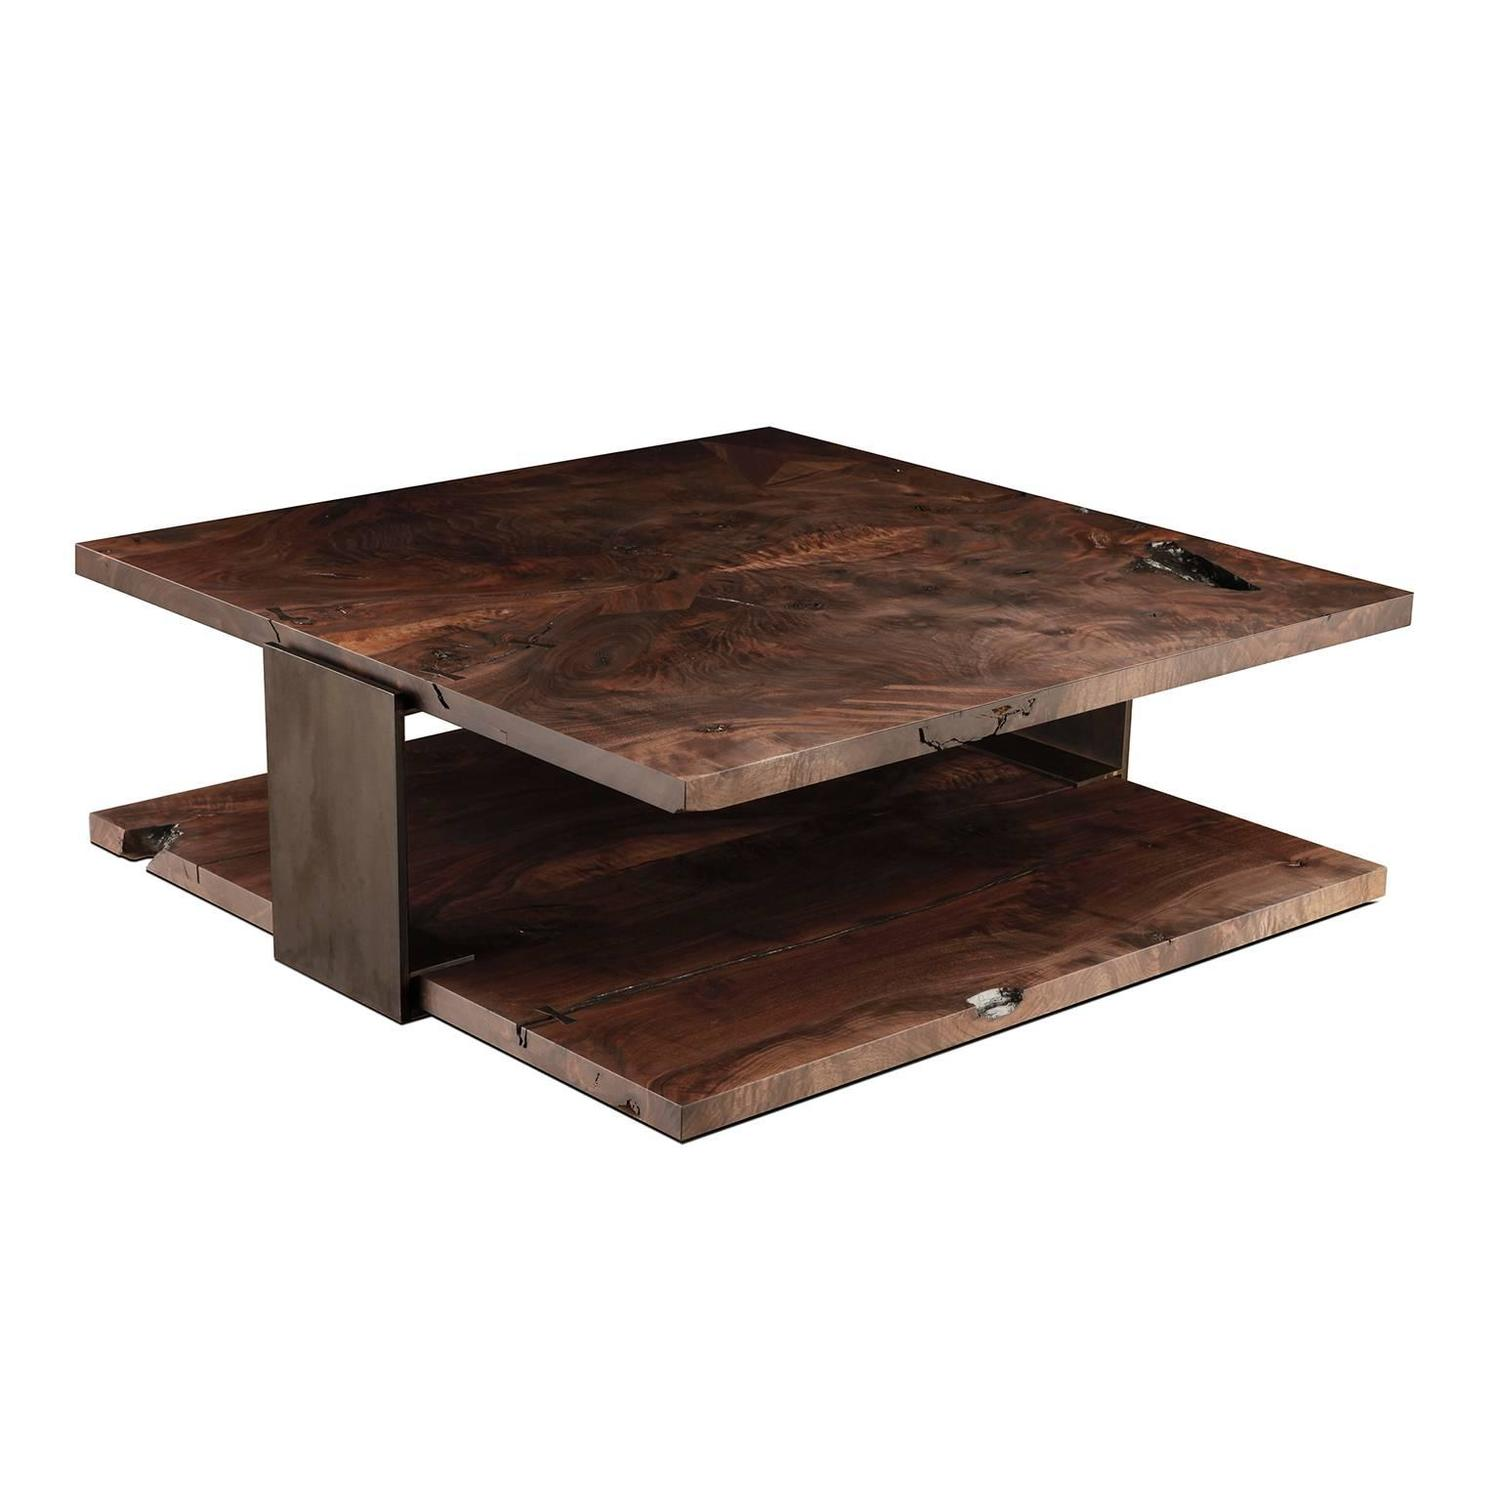 Shadow Coffee Table in Smoked Walnut and Blackened Steel by Studio